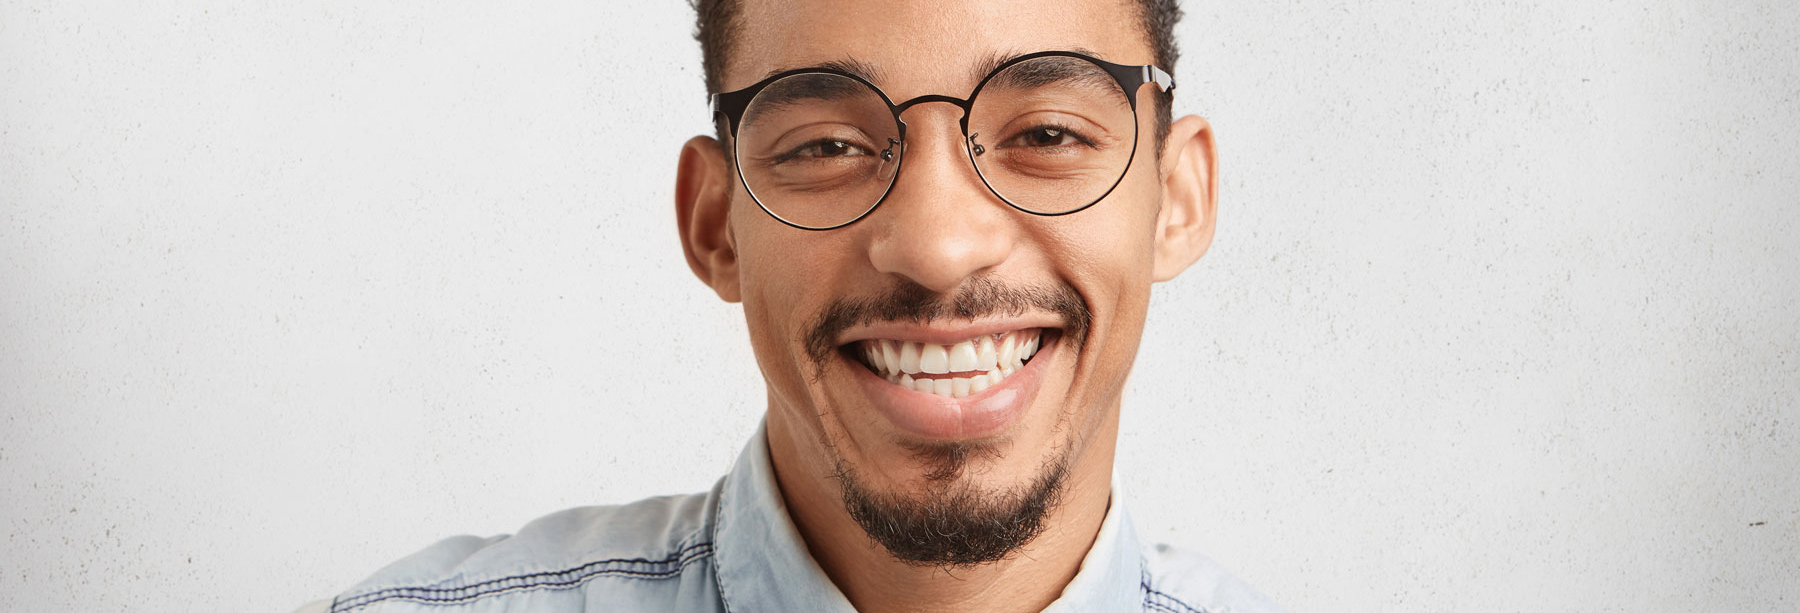 man with nice glasses smiling